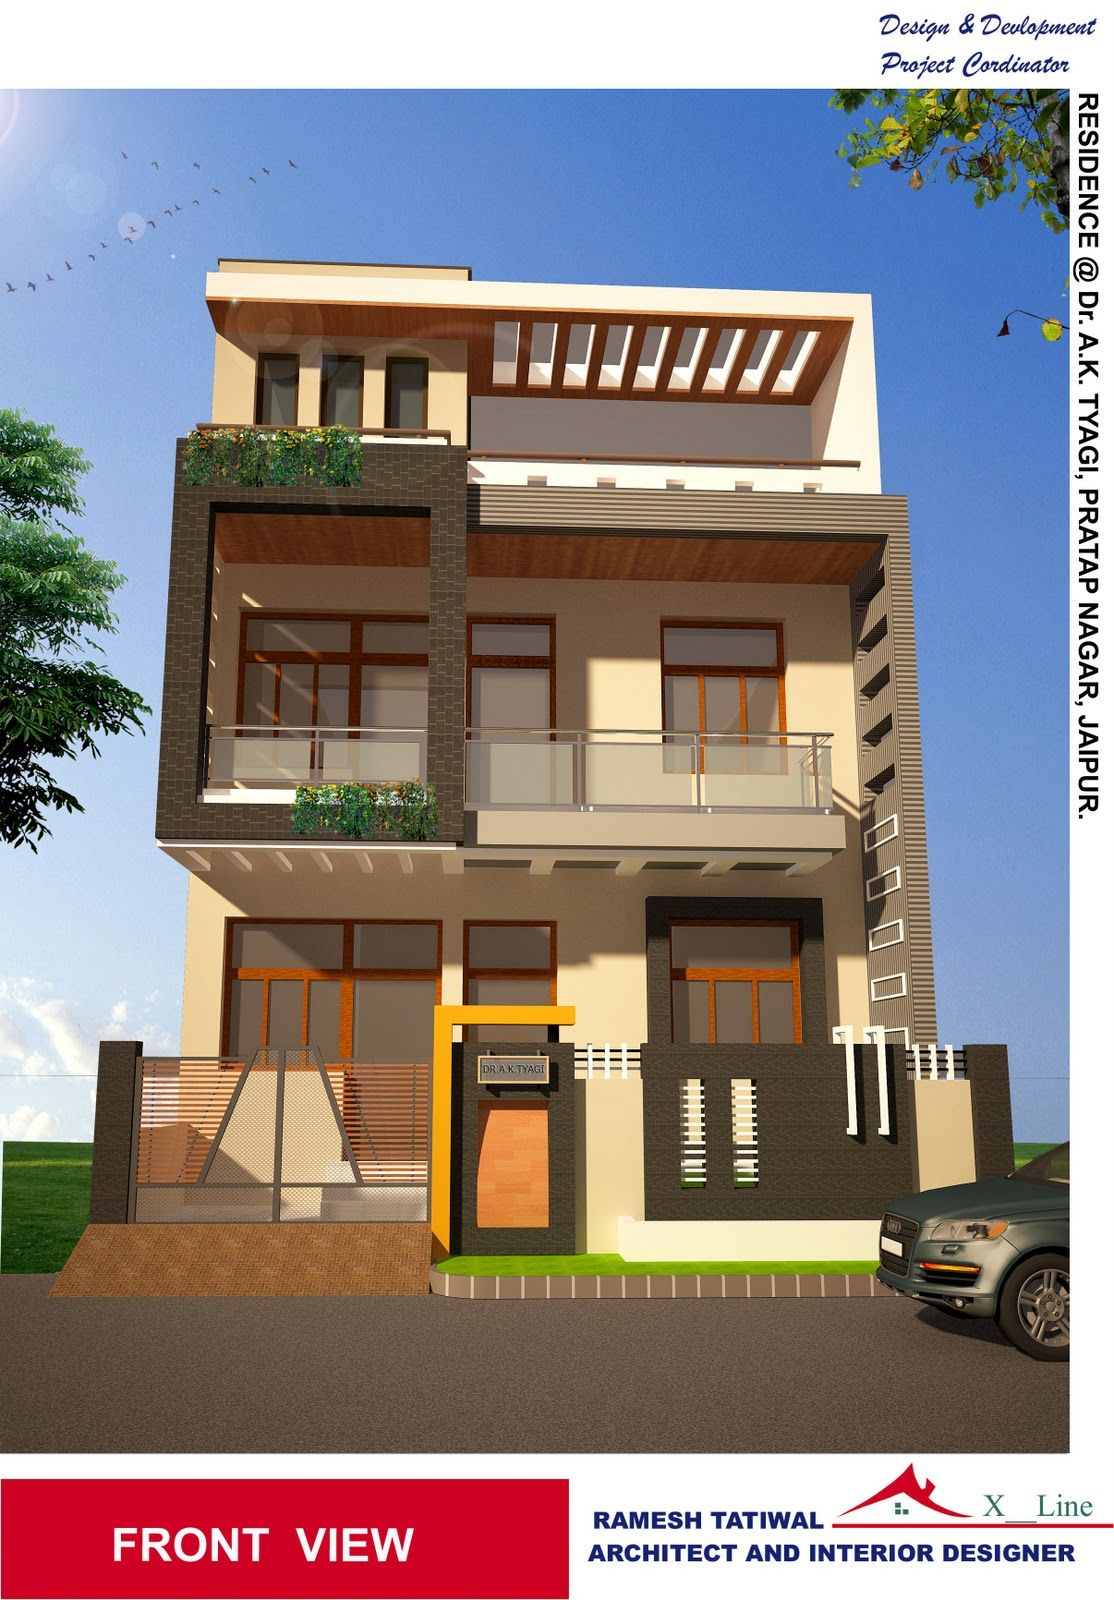 Housedesigns modern indian home architecture design from for Simple house plans india